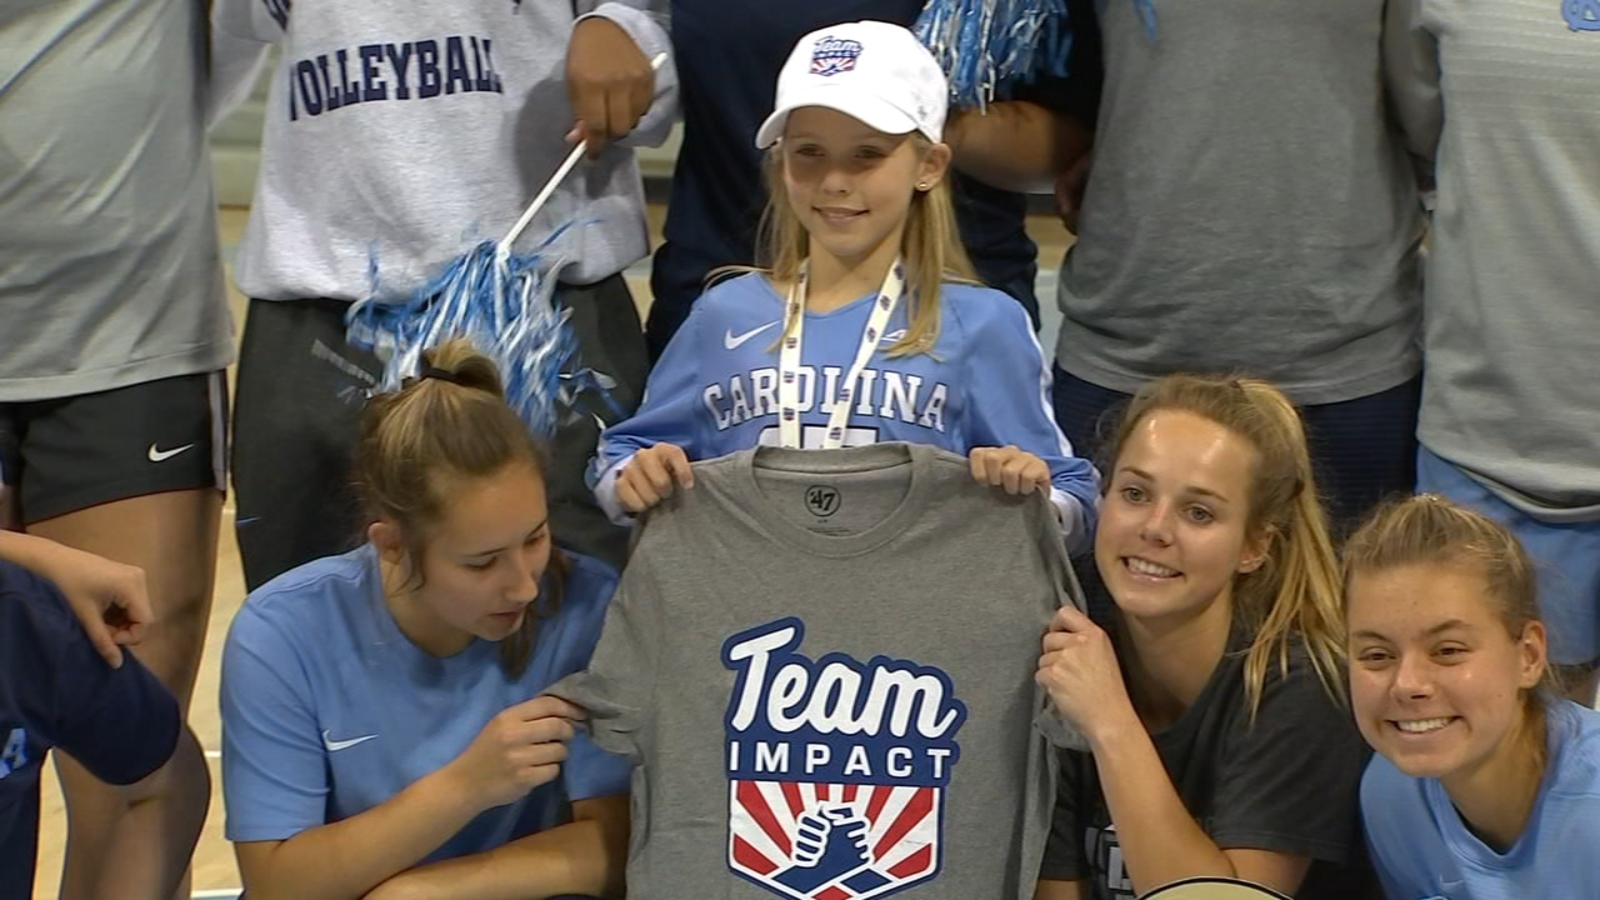 UNC volleyball makes it a special day for Pittsboro girl with cystic fibrosis